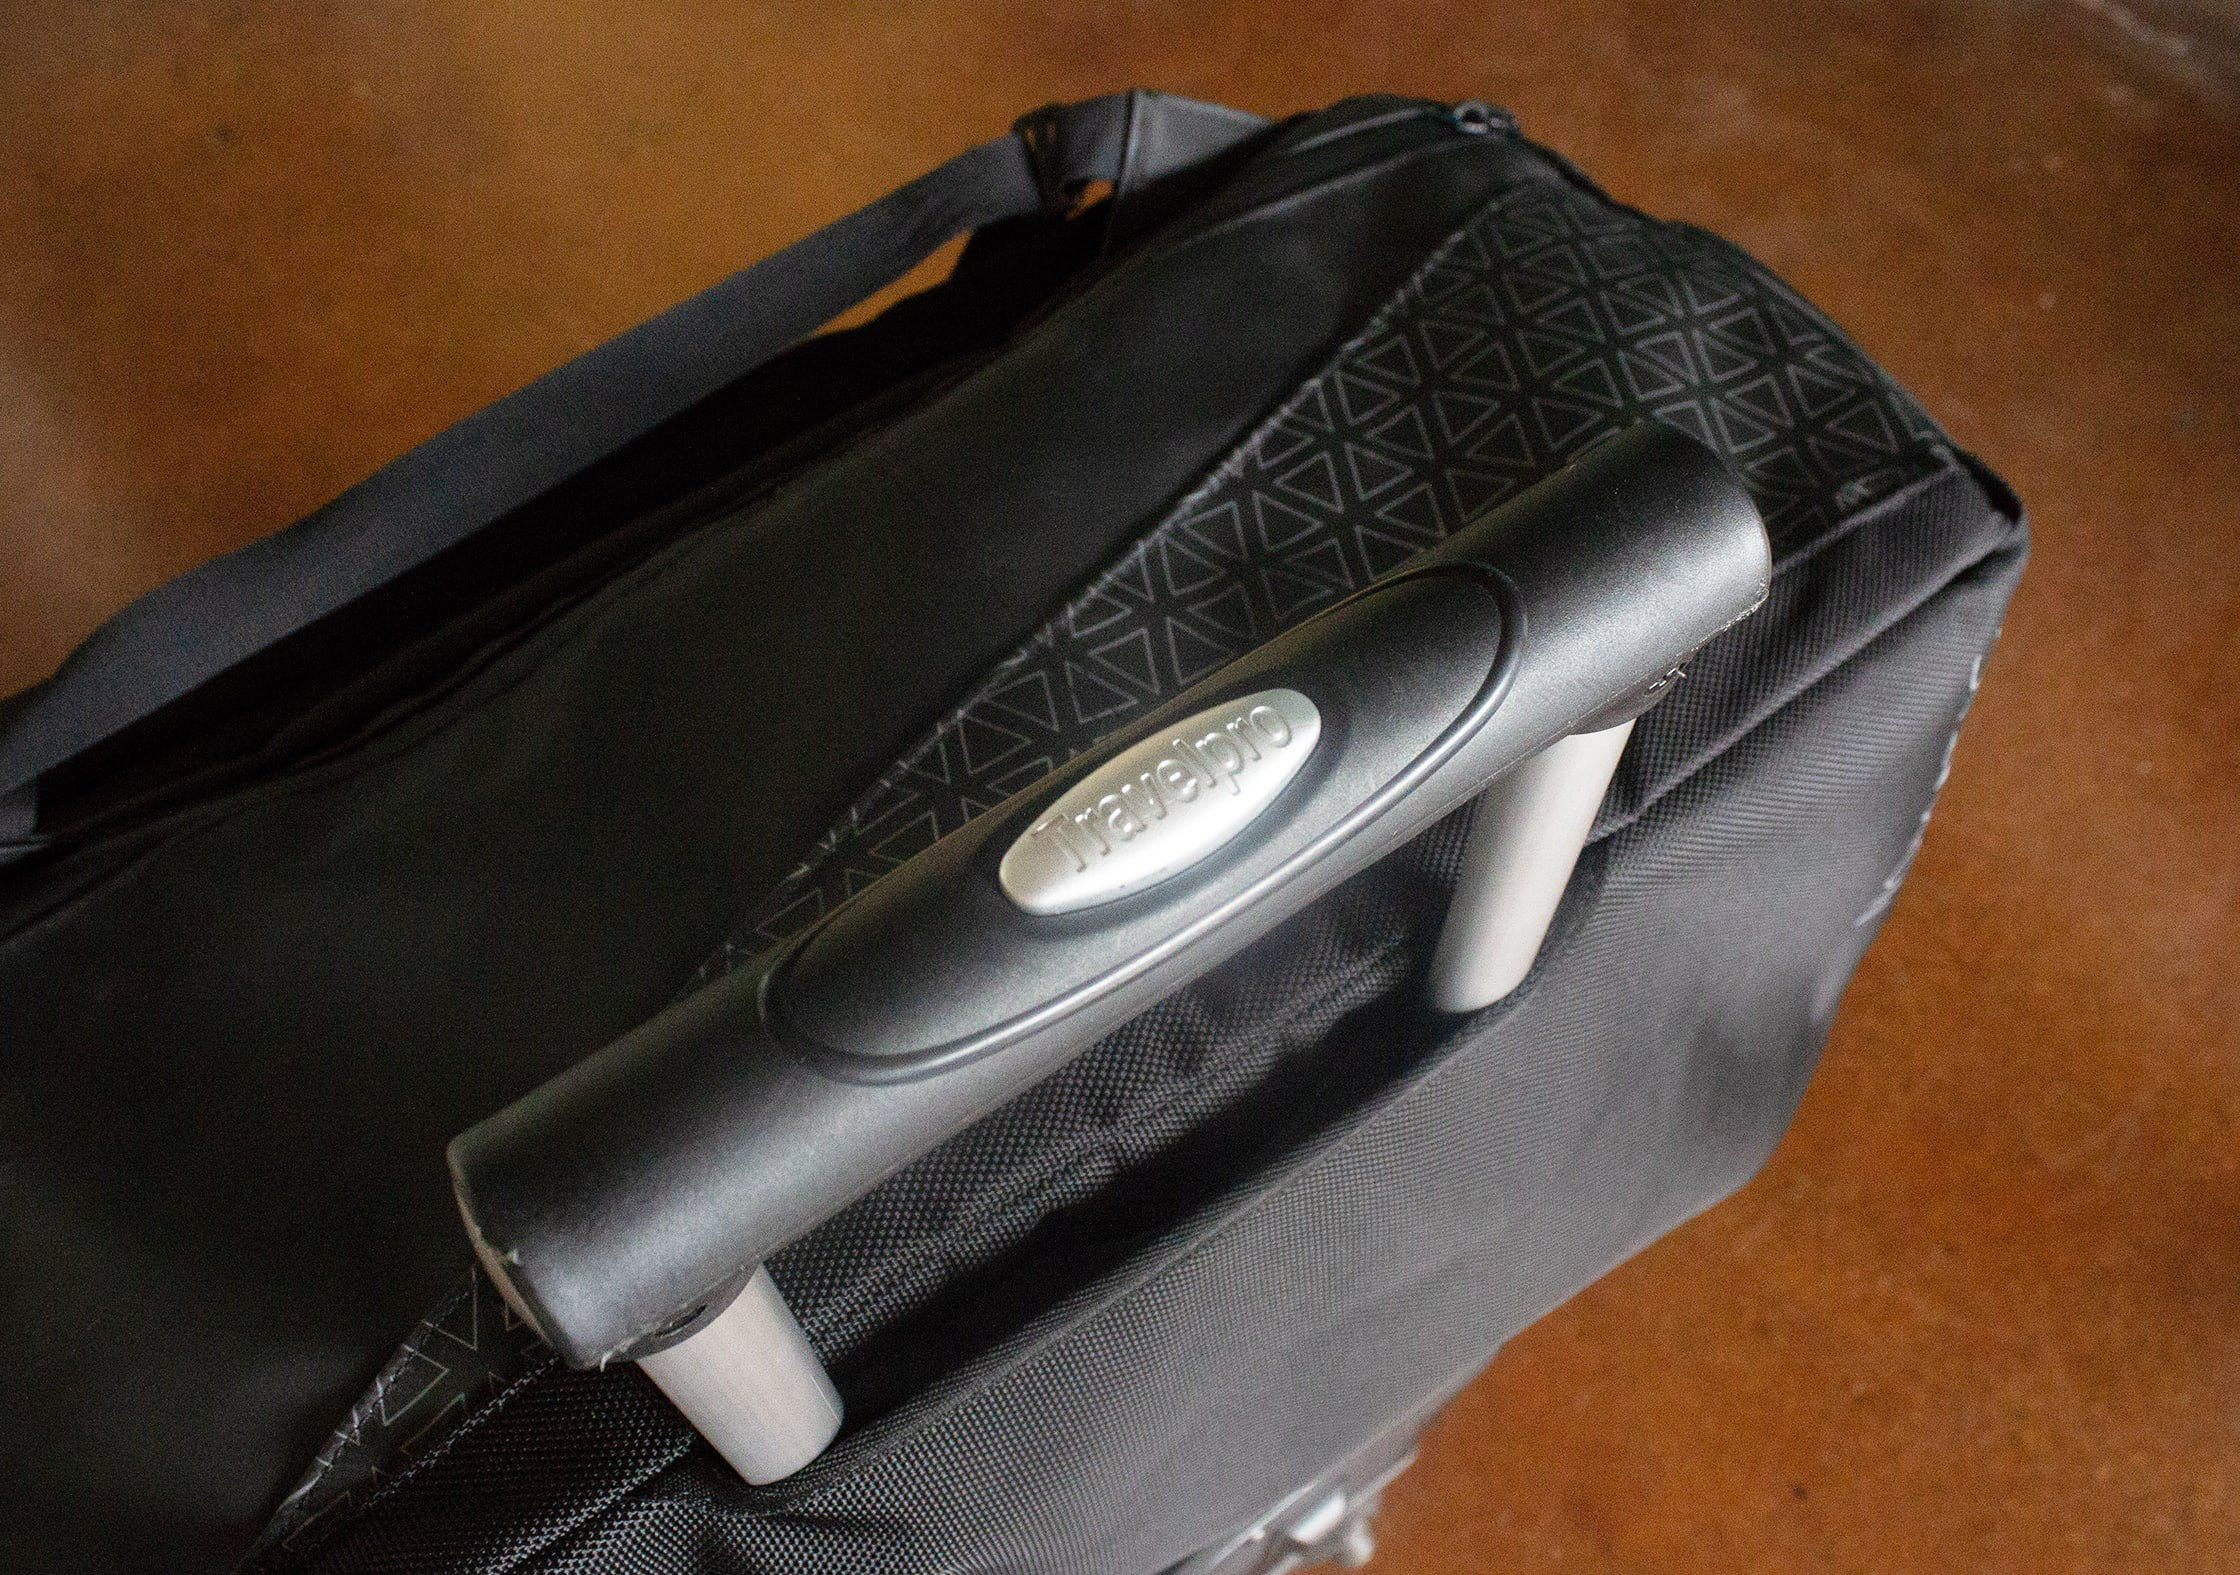 NOMATIC Travel Bag With Luggage